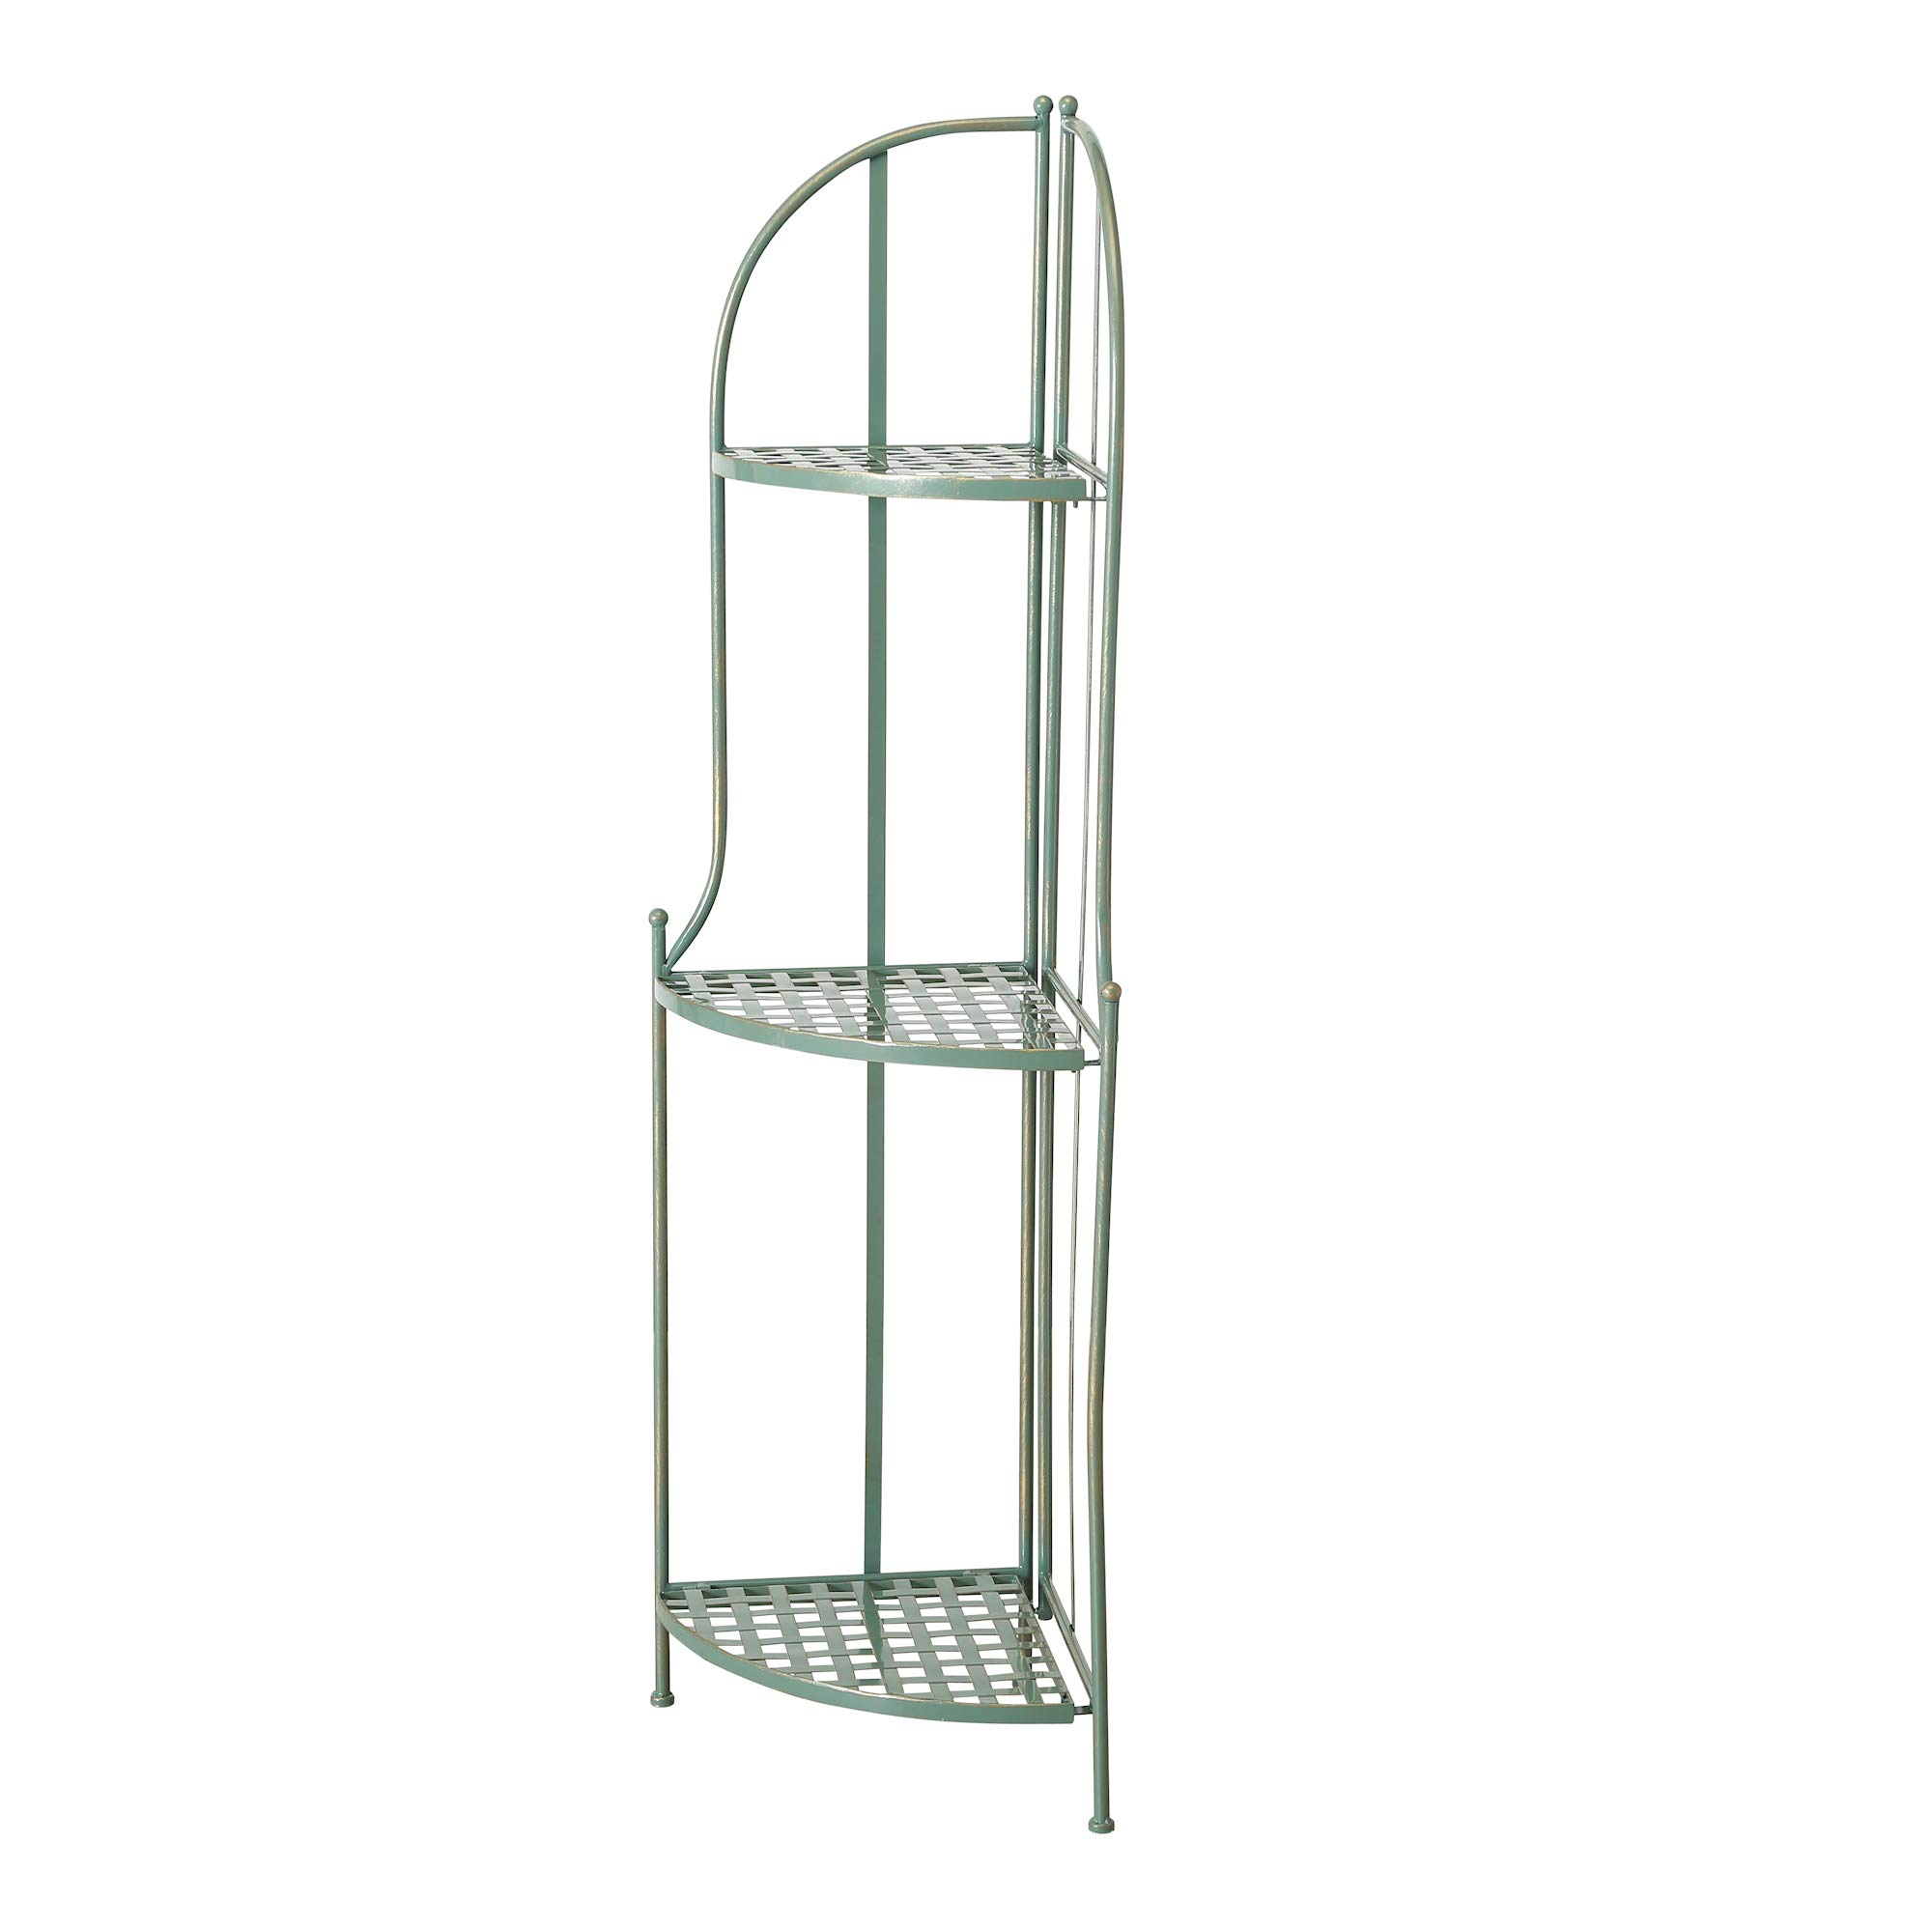 Charlton Street Corner Rack, 3 Shelves, Rustic Green with Terracotta Undertone, Paint Rubbed Distressing, Vintage Style, Iron, Woven Details, Folding, 4 Feet 7 Inches Tall, Indoor or Outdoor Use by WHW Whole House Worlds